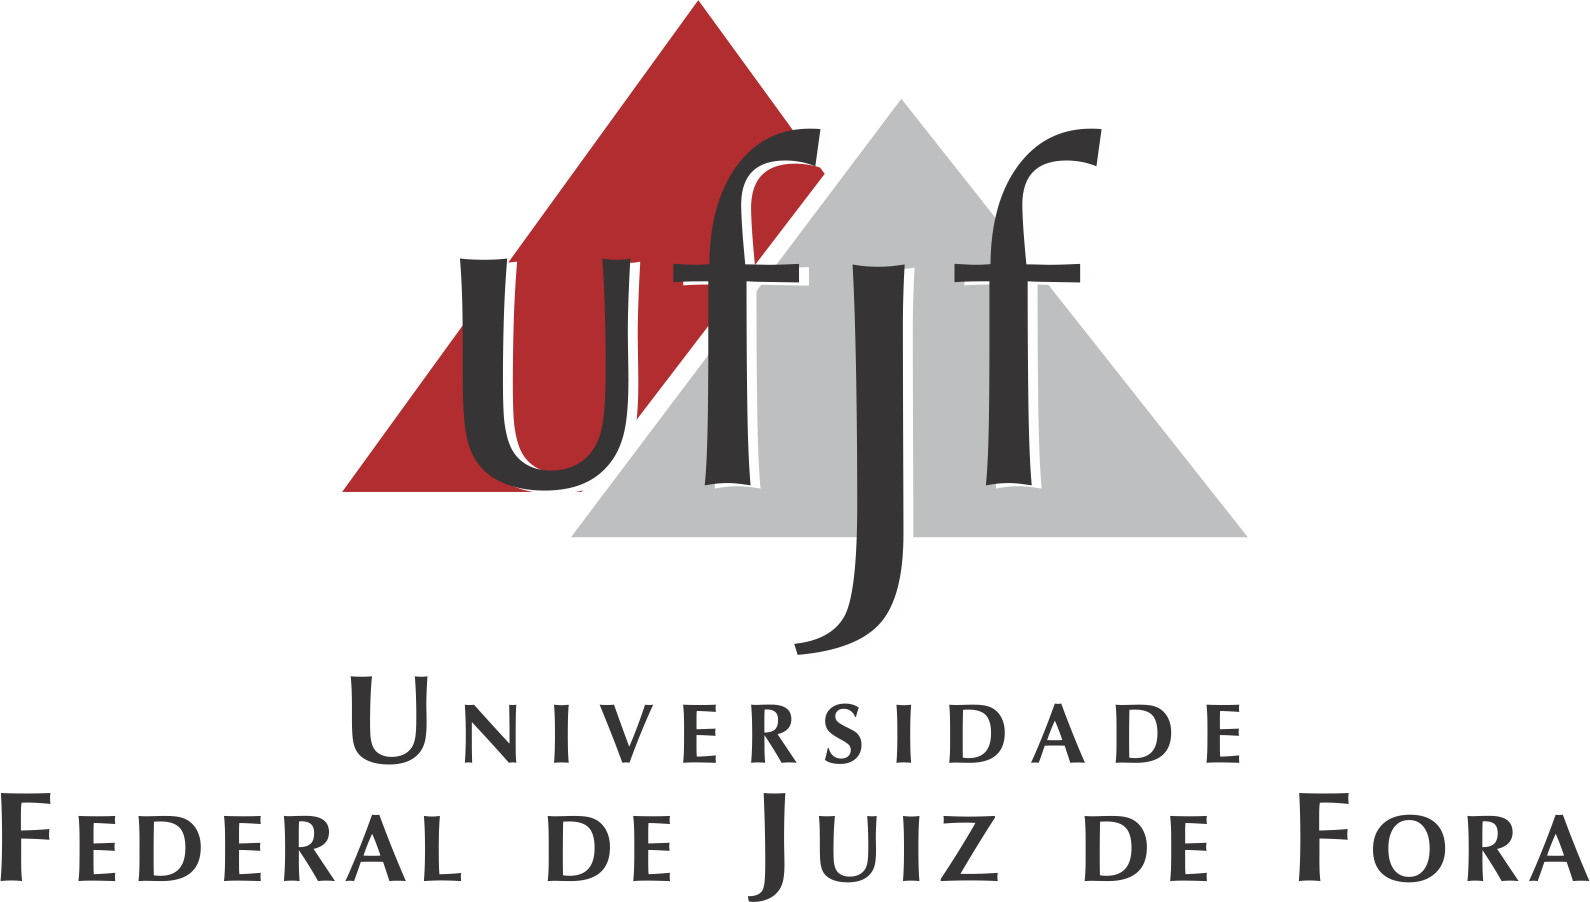 Concurso Universidade Federal (UFJF)